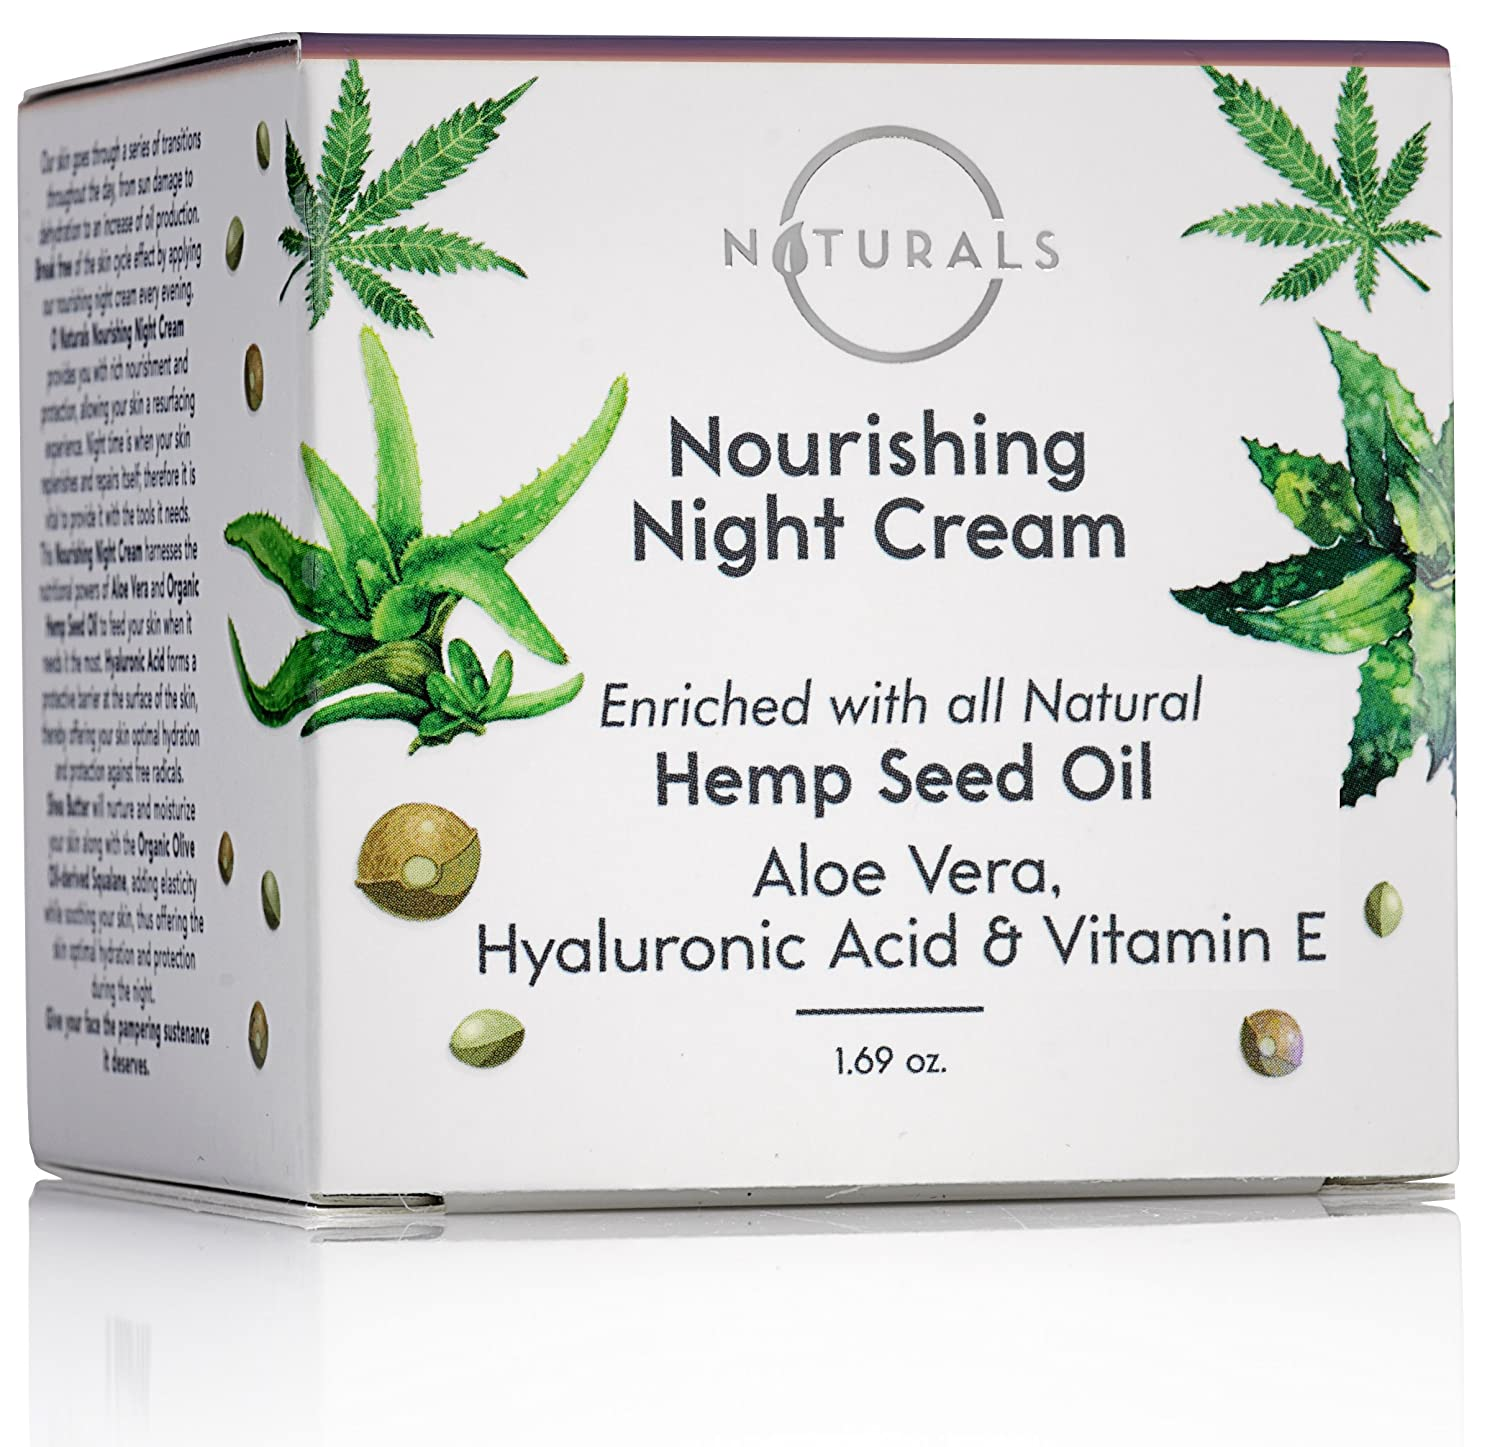 O Naturals Organic Hemp Seed Oil Anti-Aging Night Cream for Face & Neck. Moisturizes, Nourishes & Repairs Skin While Sleeping. Enriched with Hyaluronic Acid, Shea Butter & Vitamin E. 1.69 oz.